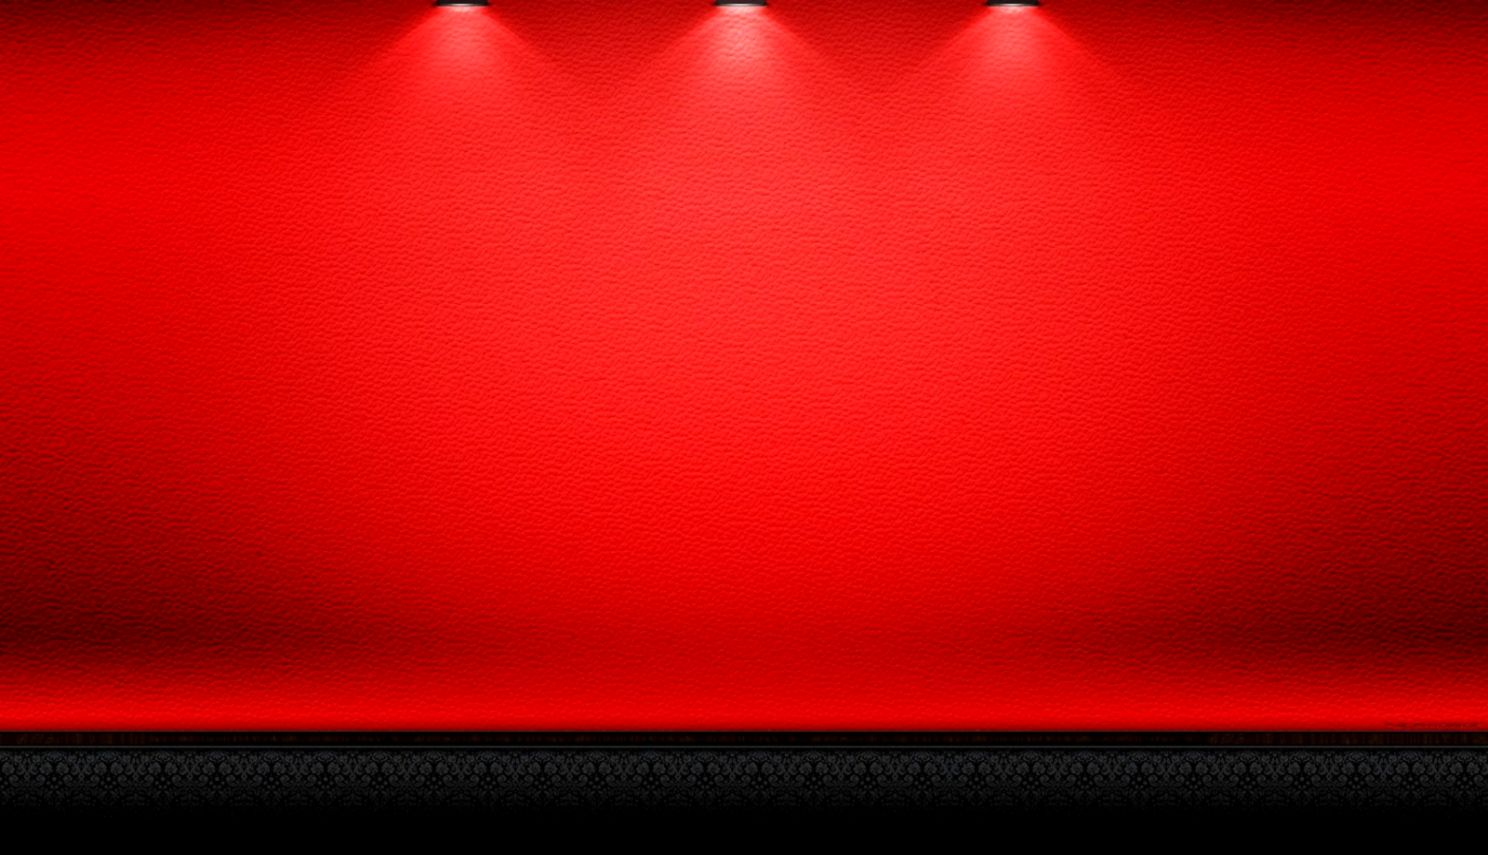 Red Abstract Wallpaper Designs | Wallpapers Gallery